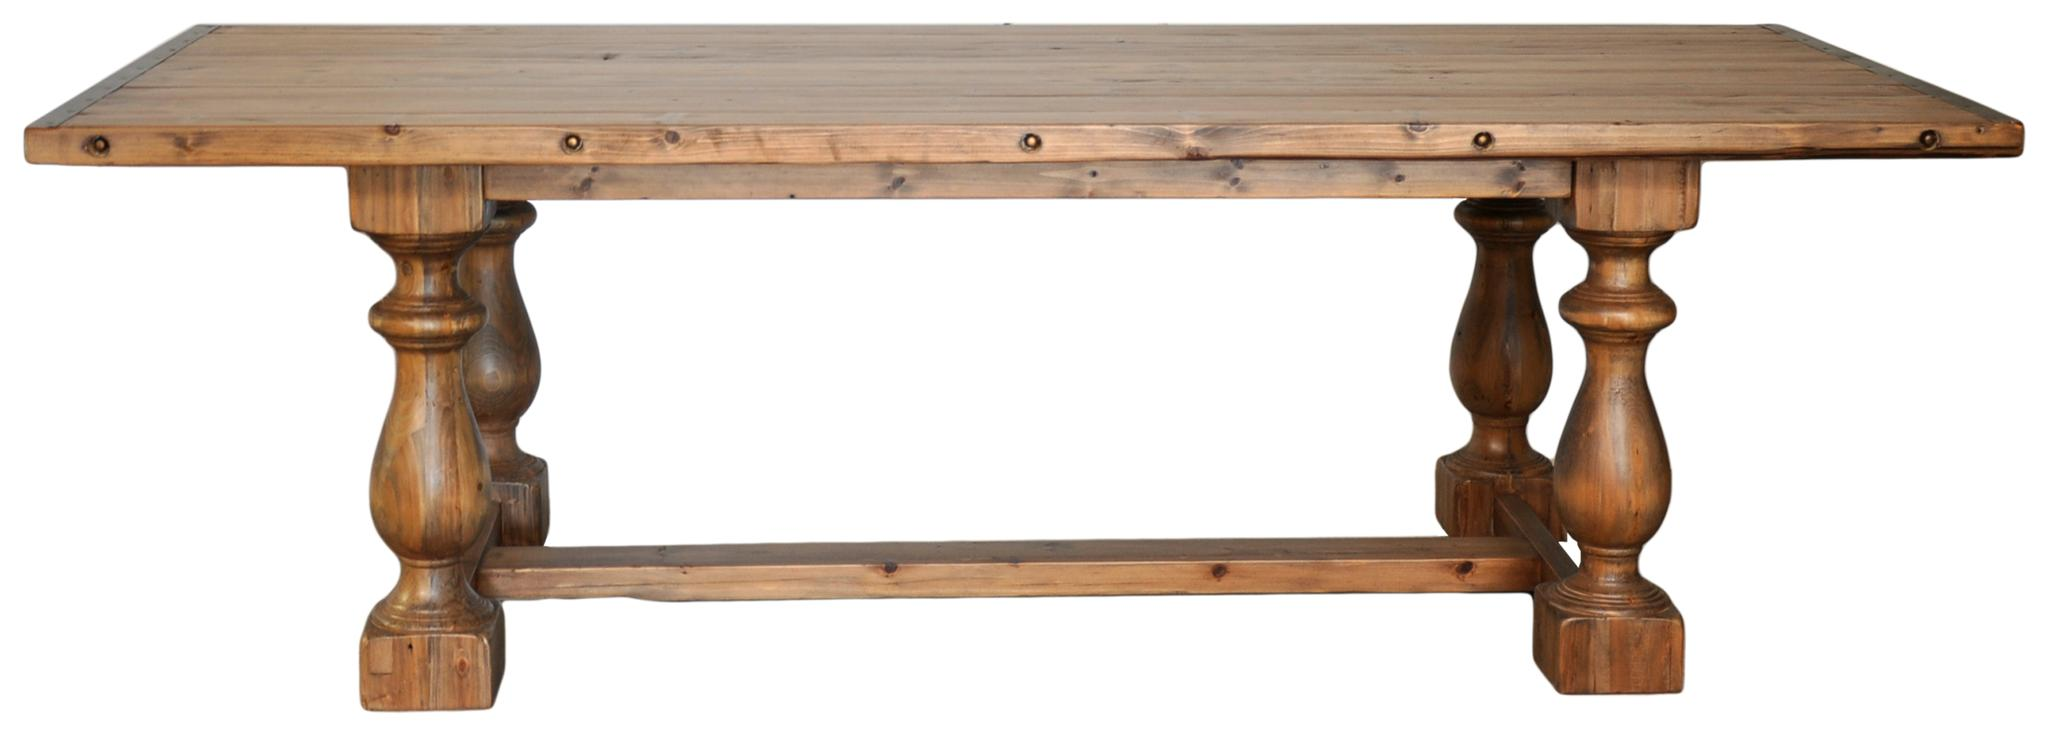 Image Gallery Old Wood Table